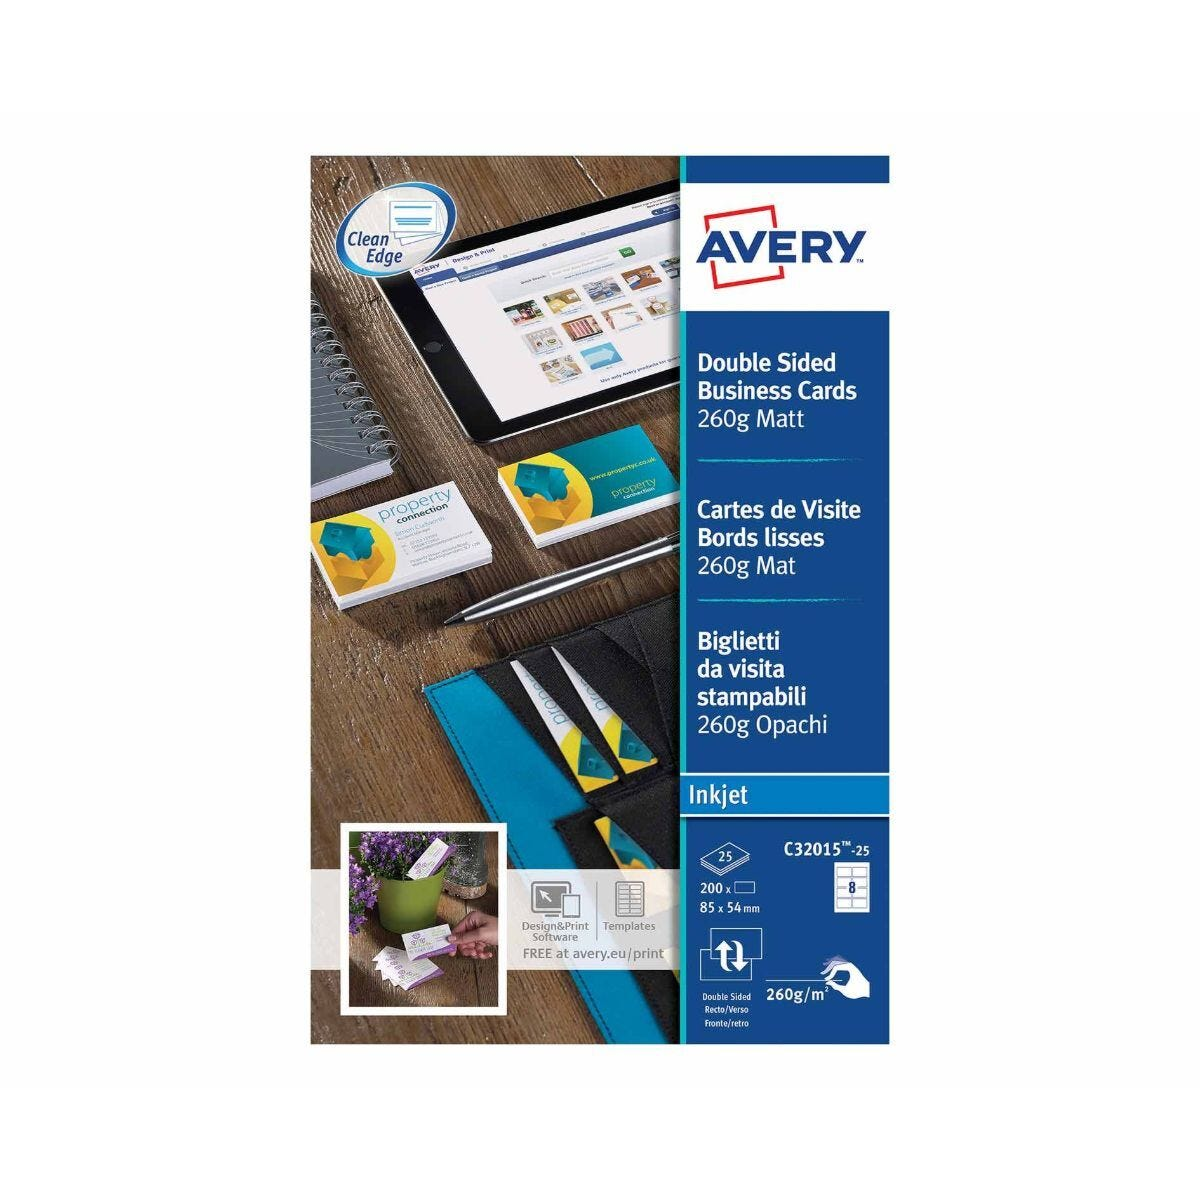 Avery Double Sided Inkjet Business Cards 85 x 54mm Pack of 200